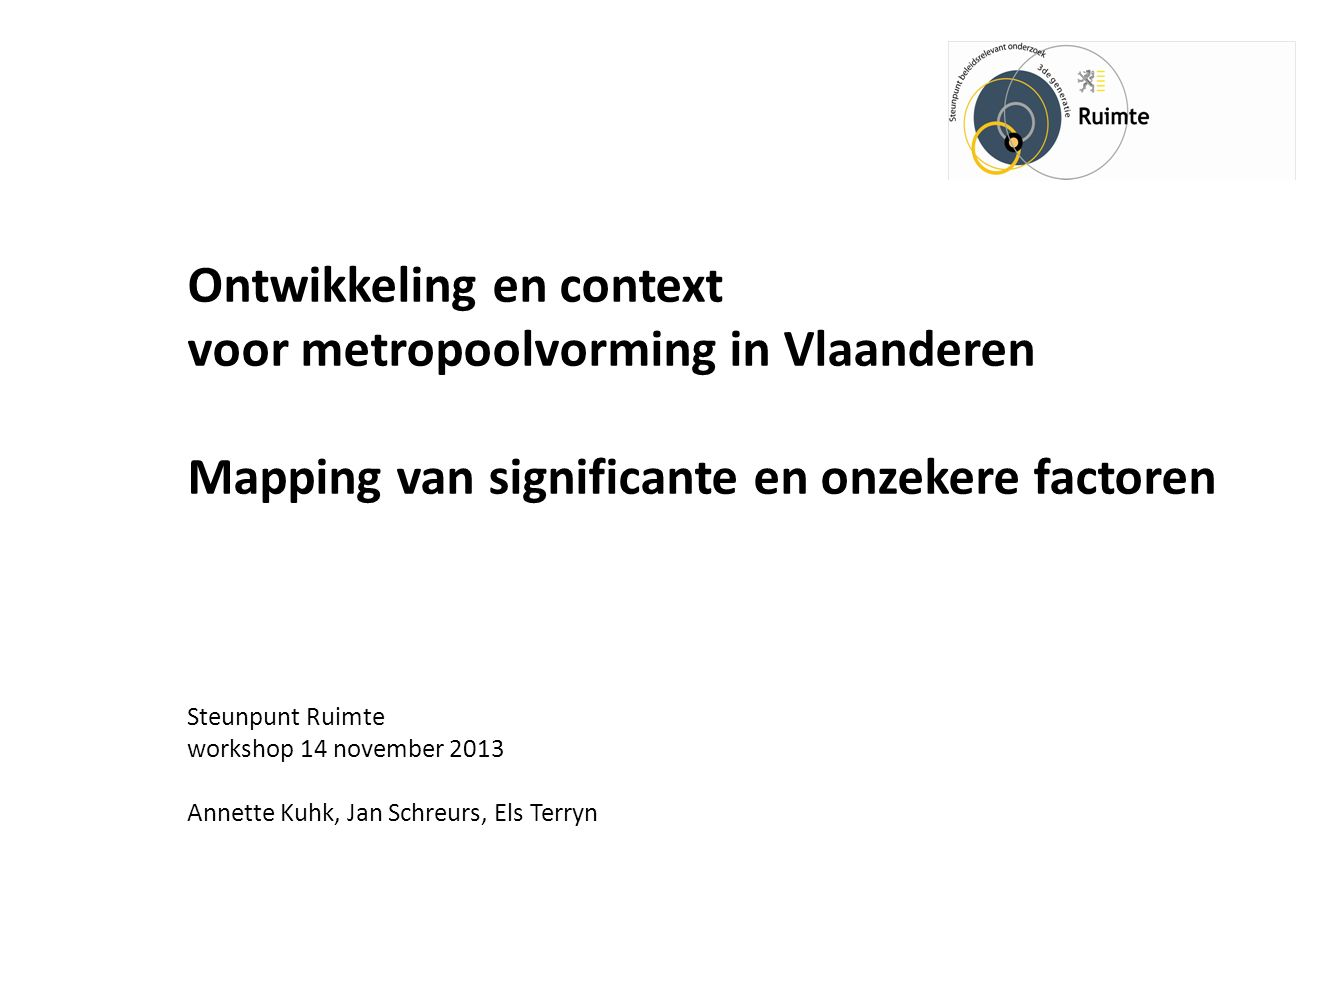 15.10-15.40 2.3.Tussentijdse conclusies (E. Terryn, J.